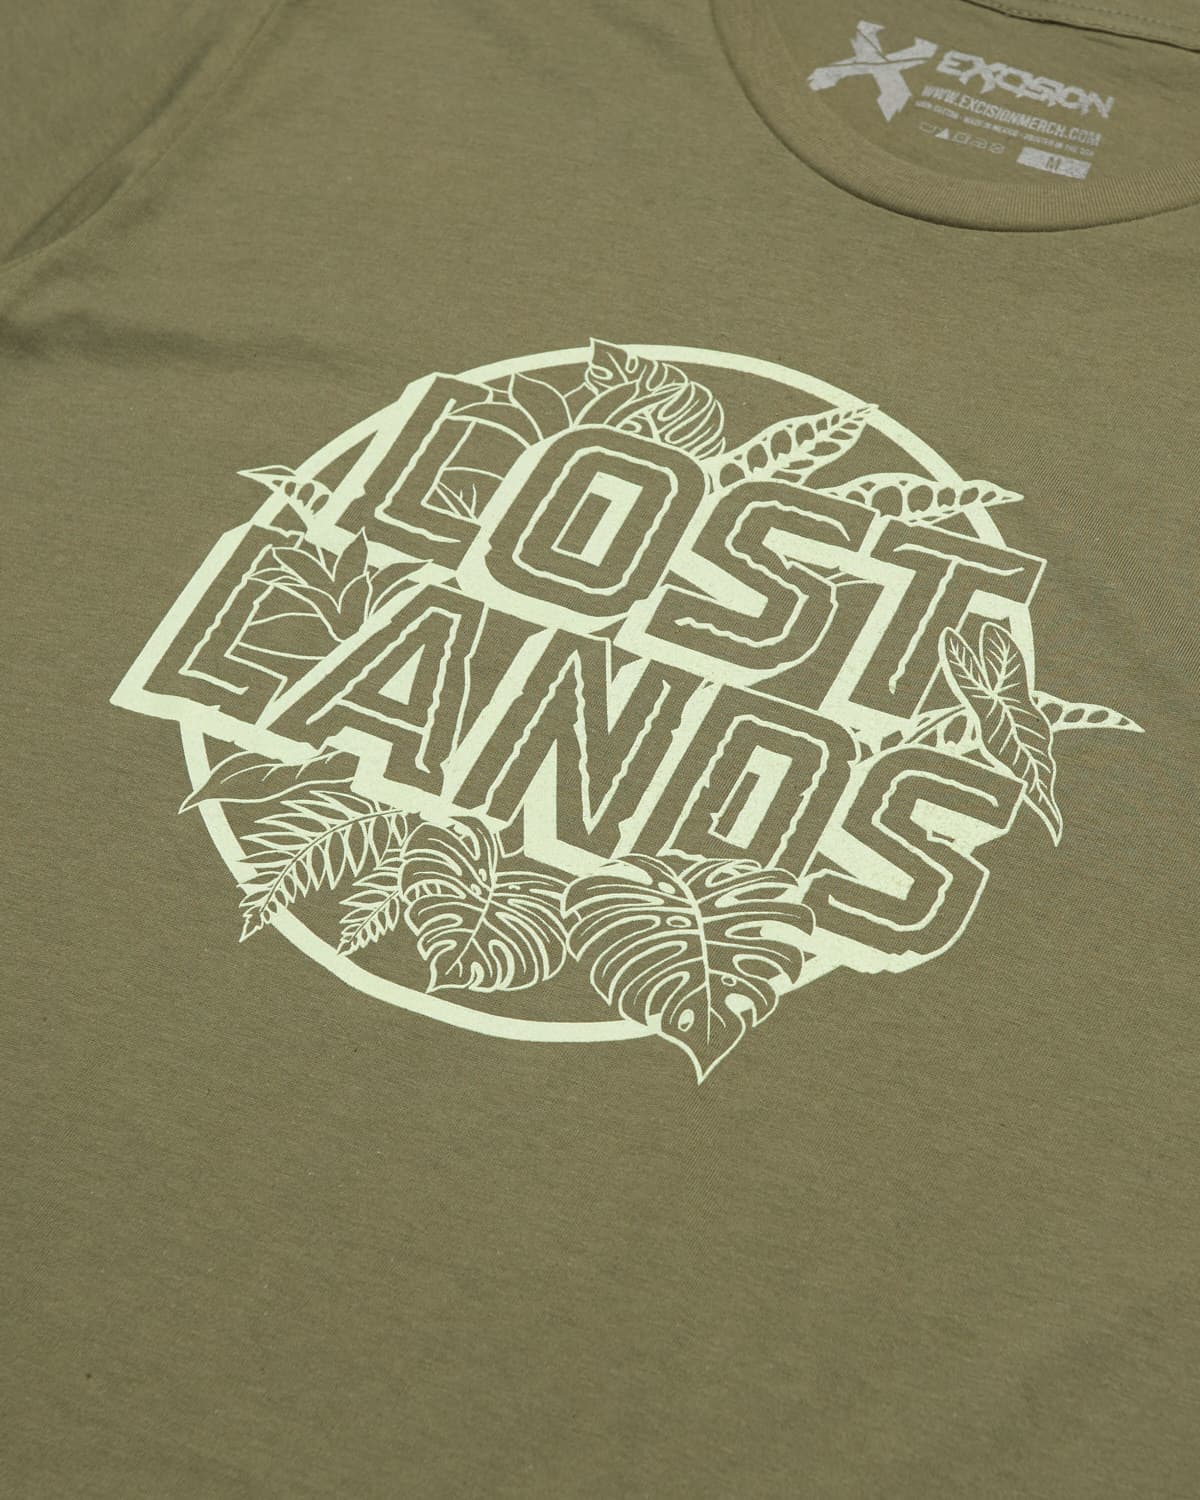 Lost Lands 'Foliage' Unisex Tee - Army Green